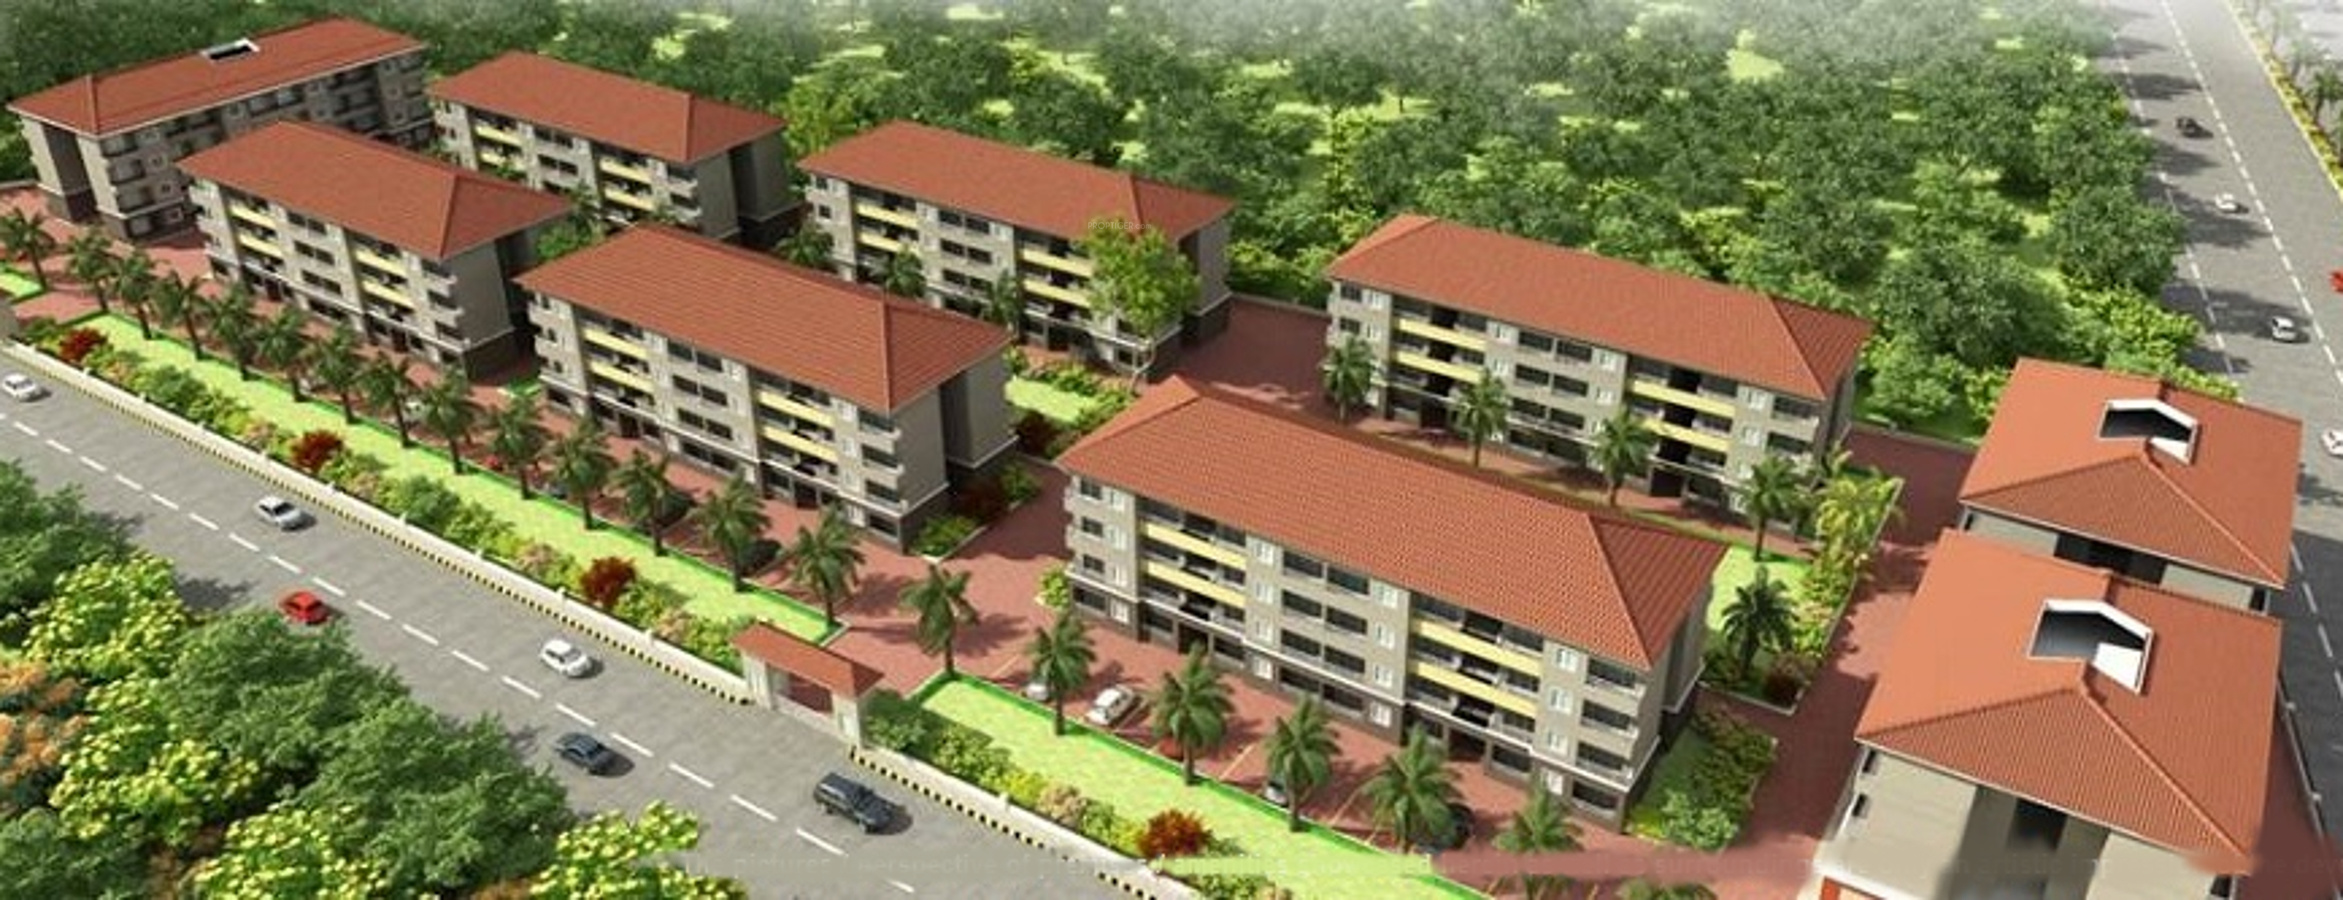 515 sq ft 1 BHK 1T Apartment for Sale in Consortexe Properties